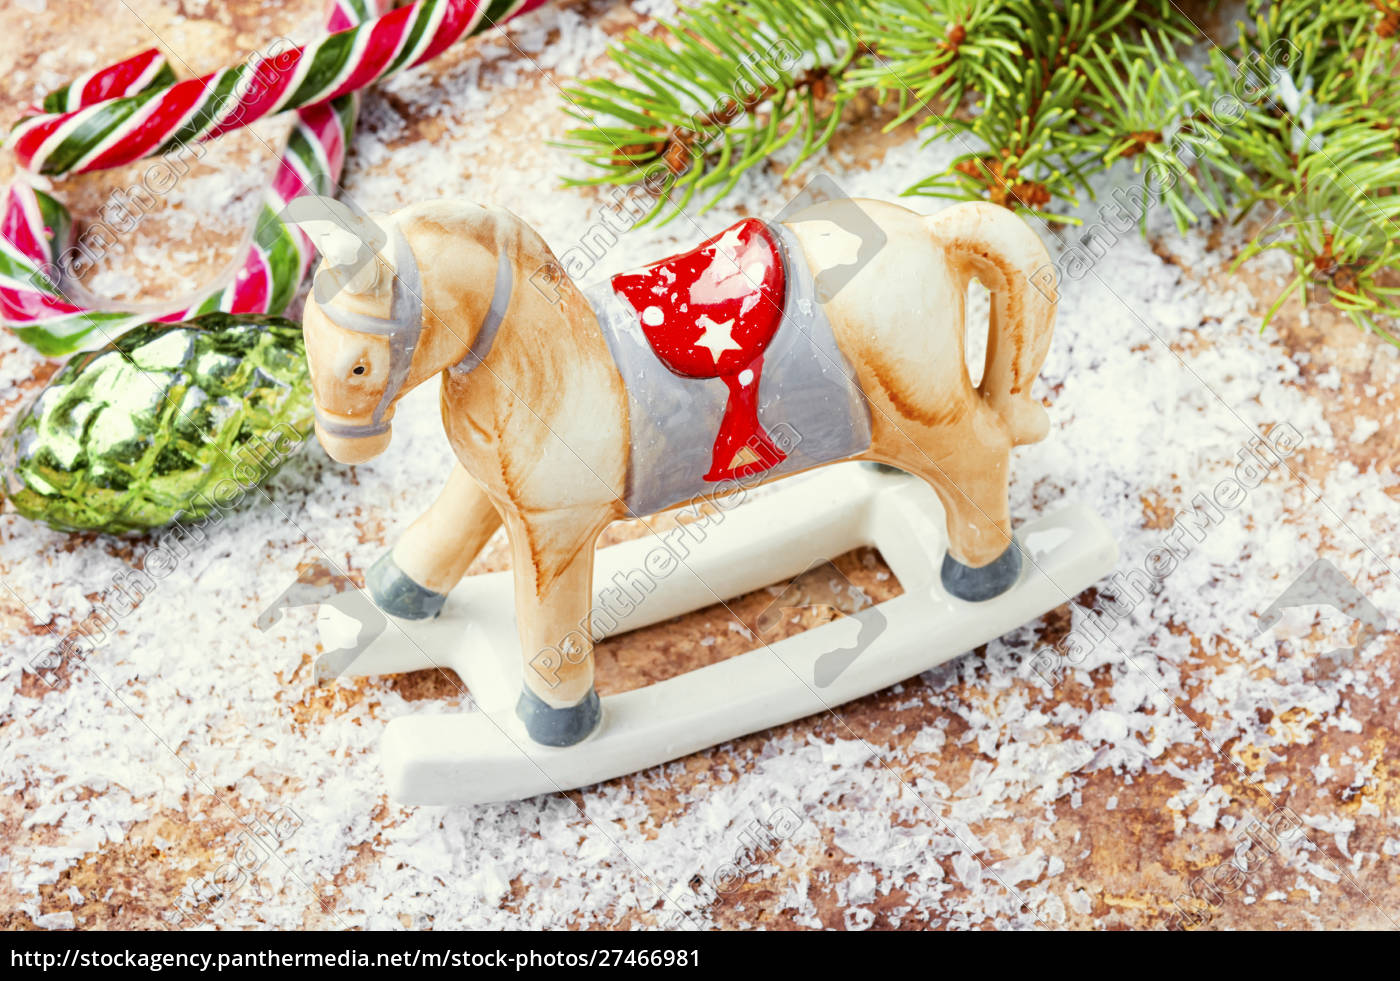 childrens, toy, horse - 27466981